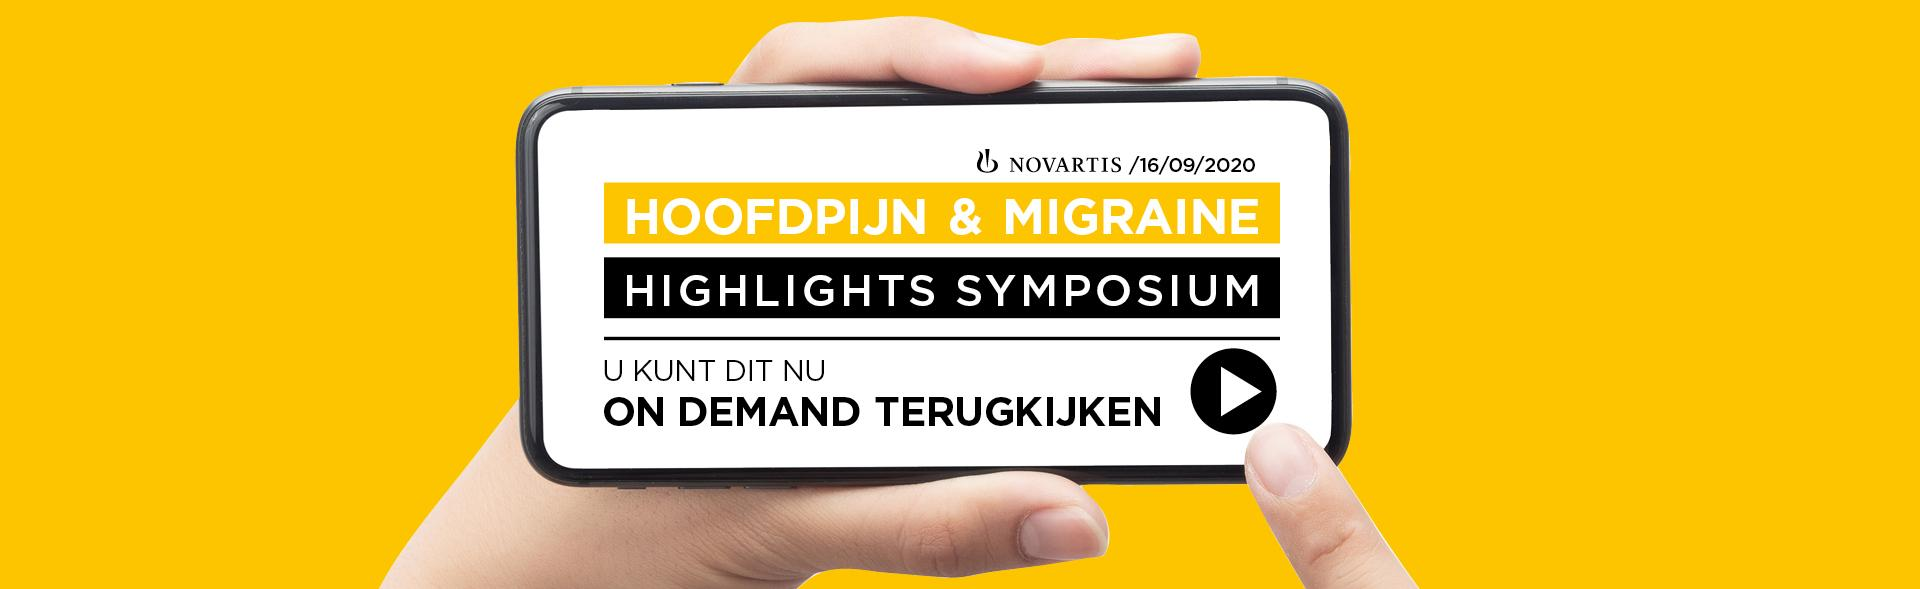 Highlight symposium 2020